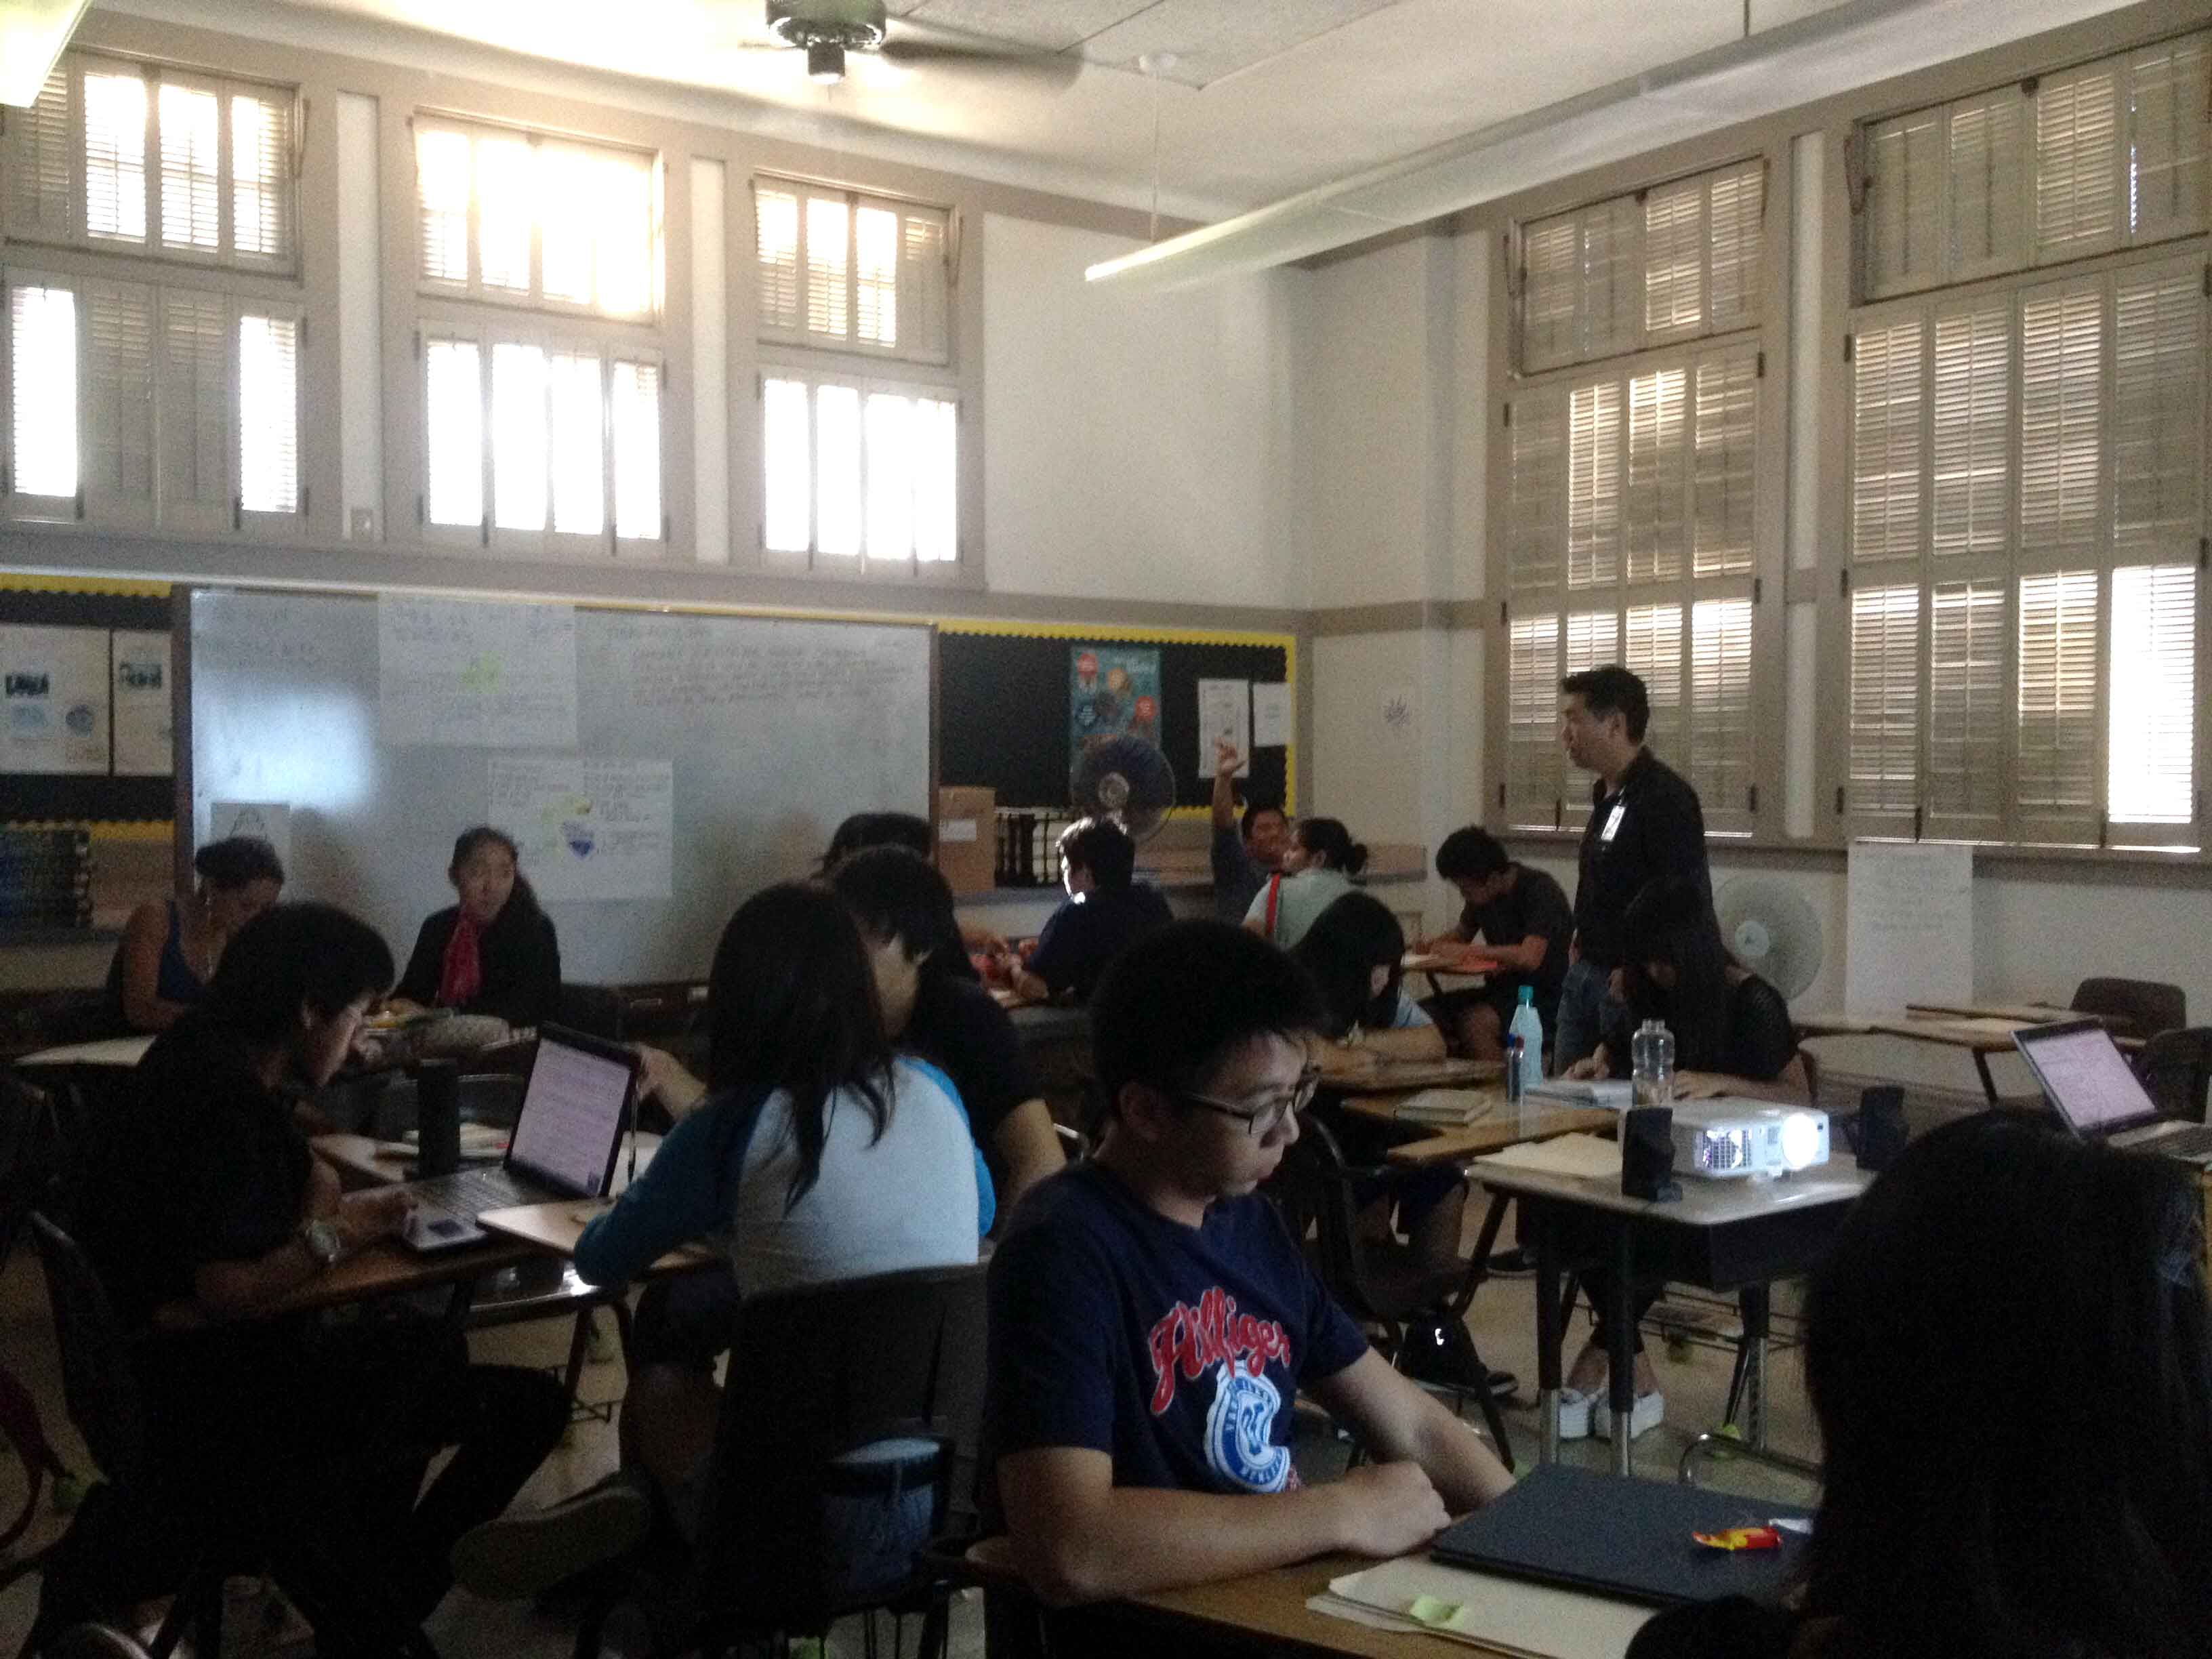 During Thursday's lockdown, all windows and doors had to be closed, but class went on.